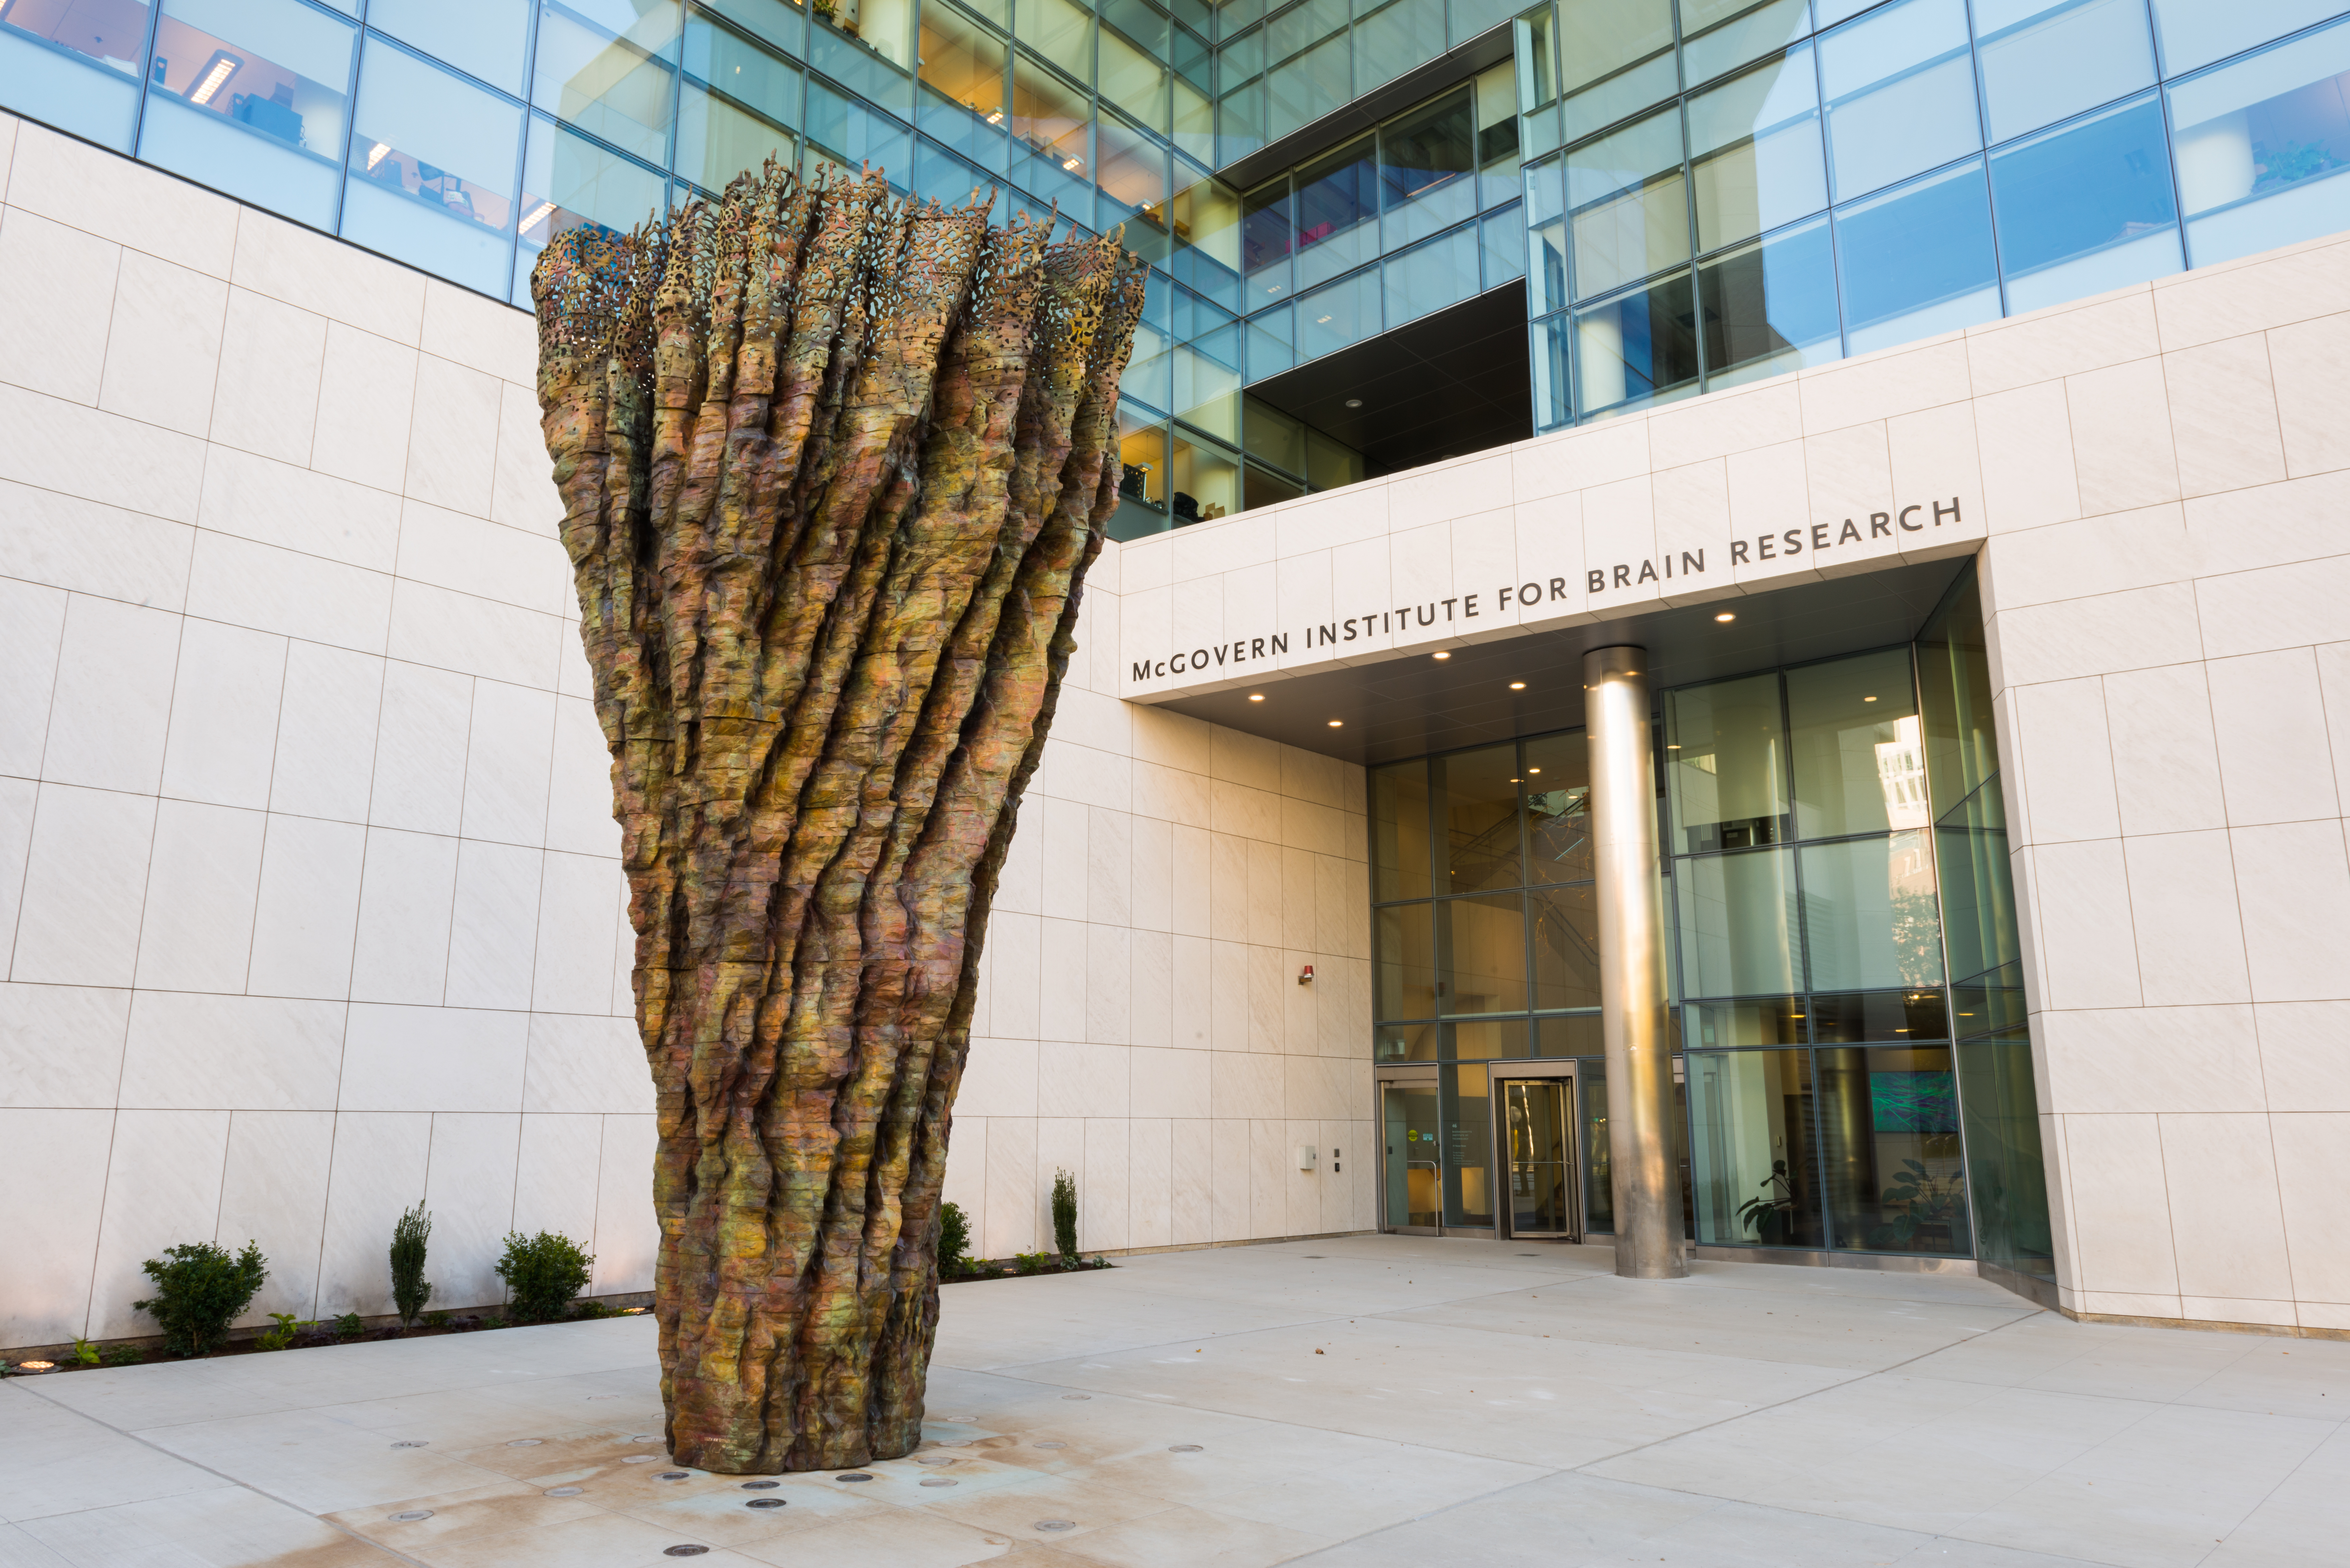 McGovern Institute for Brain Research at MIT